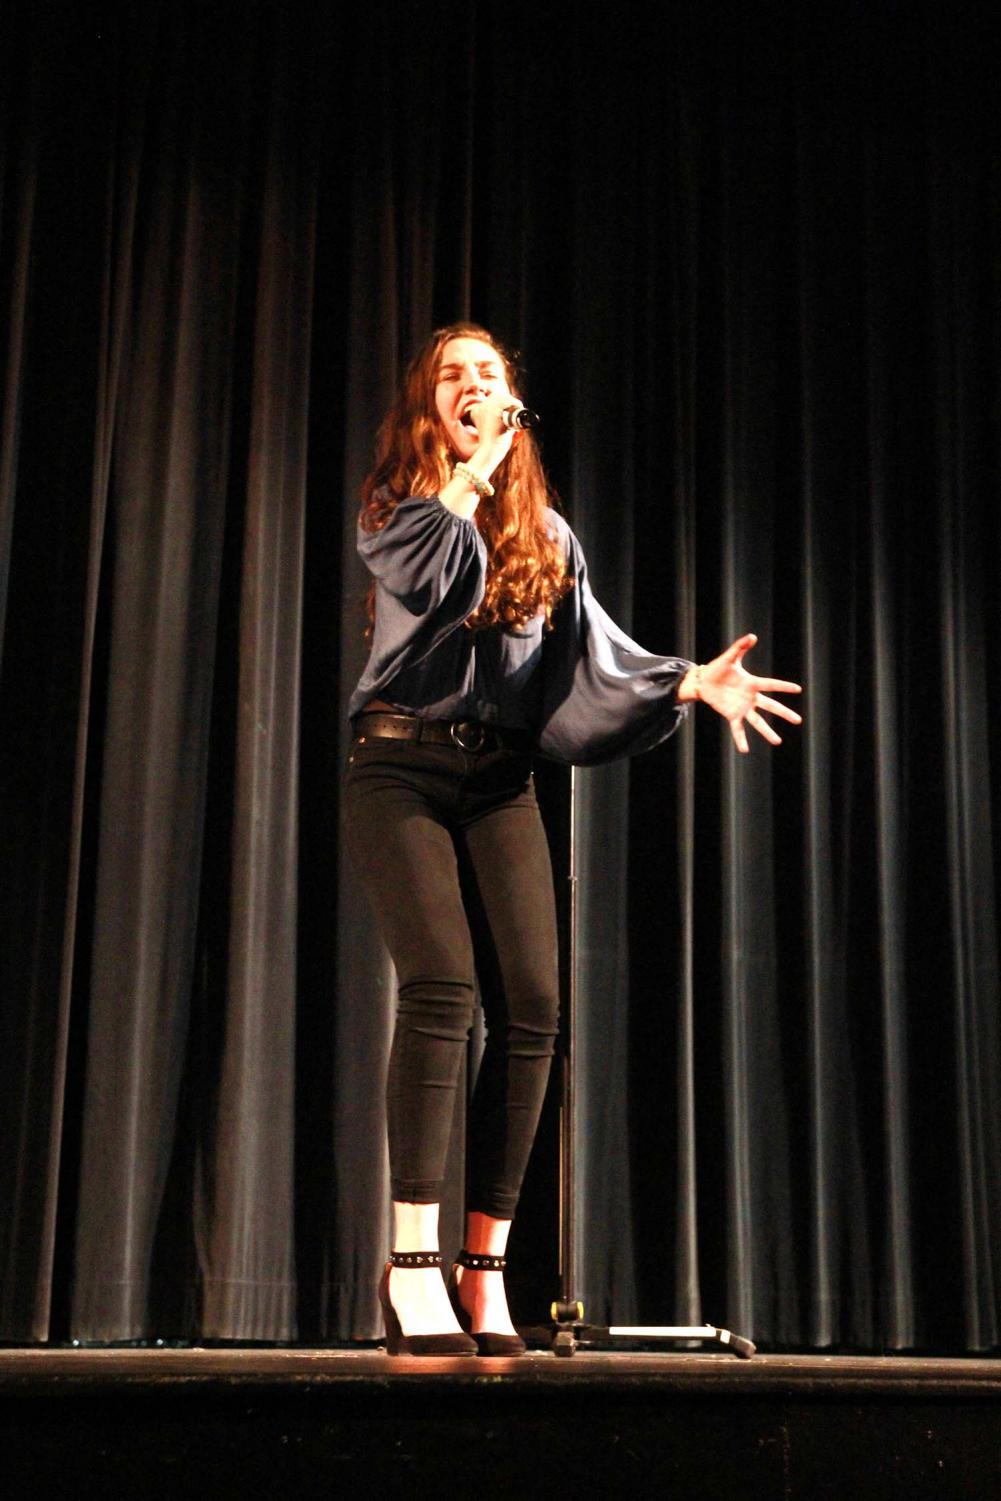 Deep+into+her+performance%2C+sophomore+Avery+Franks+sings+Against+All+Odds+by+Phil+Collins+in+the+auditorium+at+Be+the+Voice+April+23.+Franks+got+second+place+in+the+competition+and+won+a+fifty-dollar+gift+visa+card.